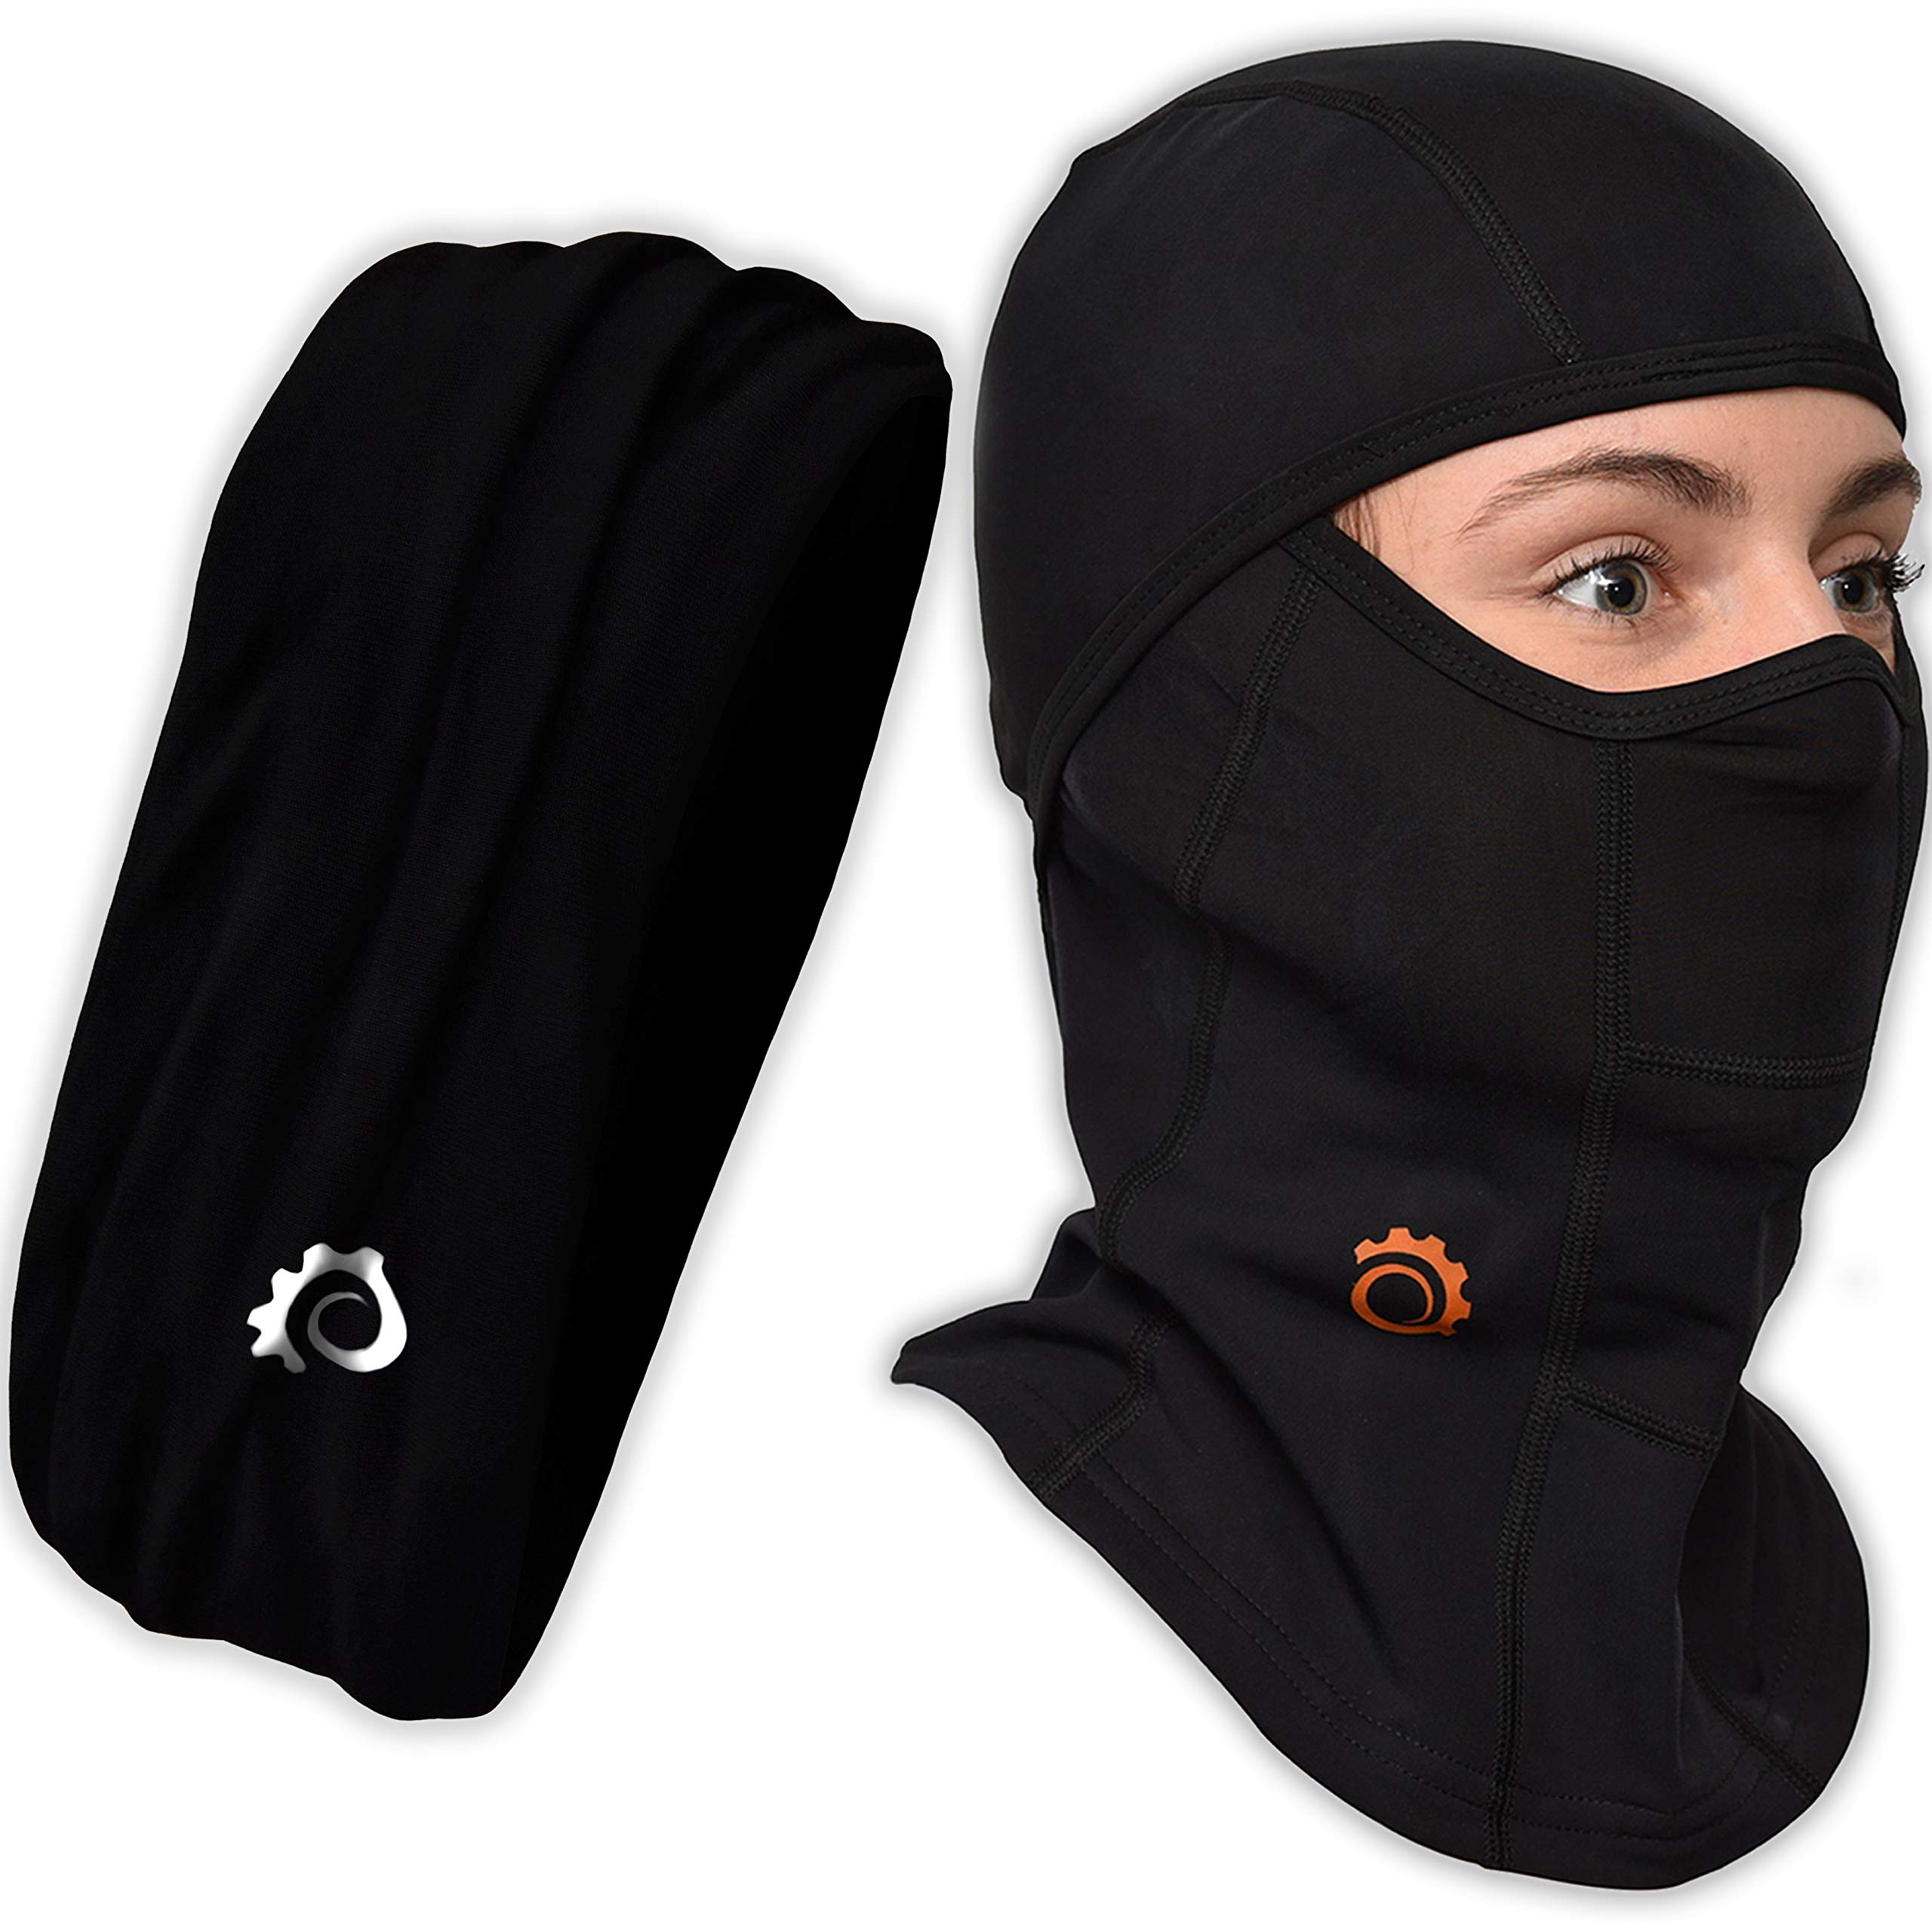 Face Mask Motorcycle Balaclava (Black + Black Headband)